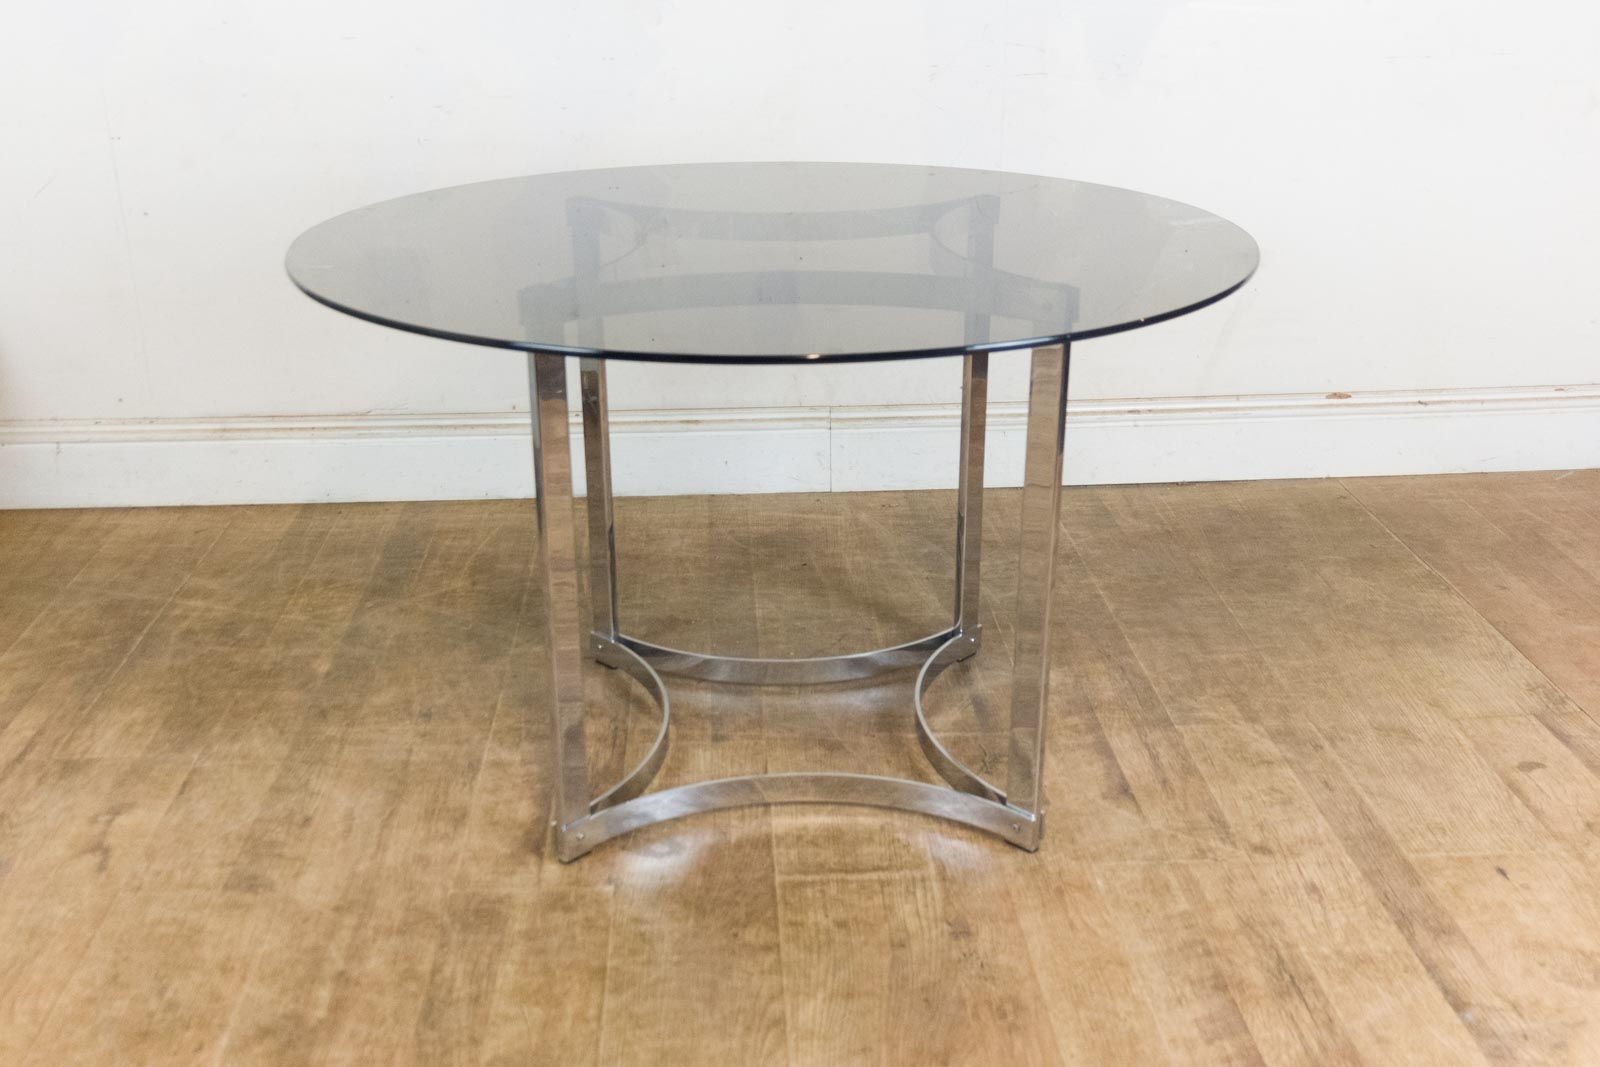 Vintage Retro Merrow Associates Smoked Glass Dining Table And 4 Chairs EBay